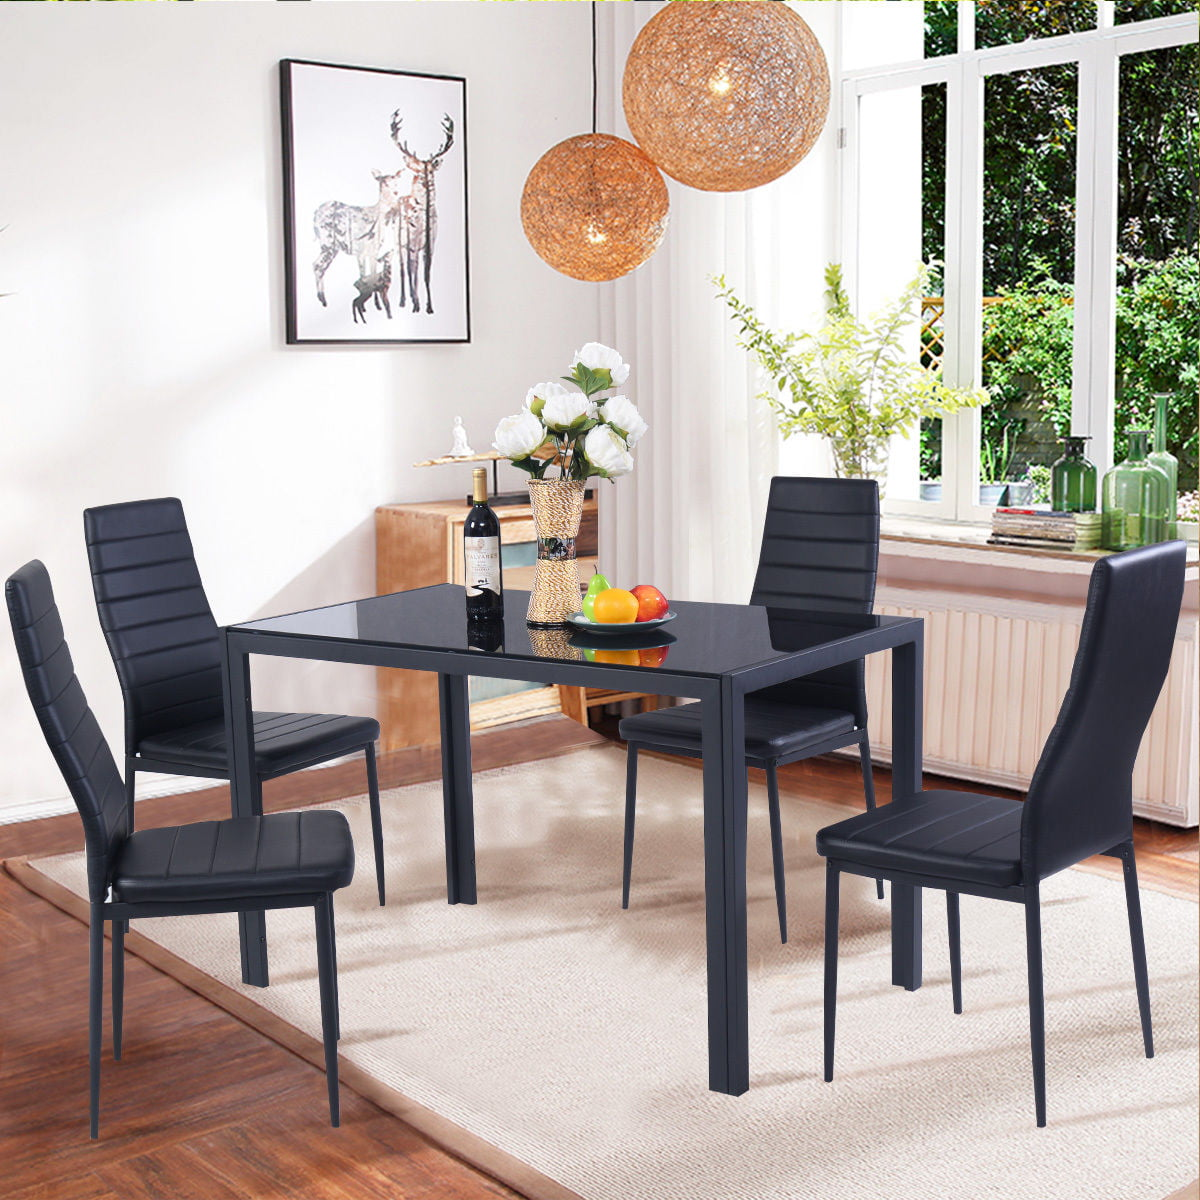 best service 29672 089f4 Costway 5 Piece Kitchen Dining Set Glass Metal Table and 4 Chairs Breakfast  Furniture